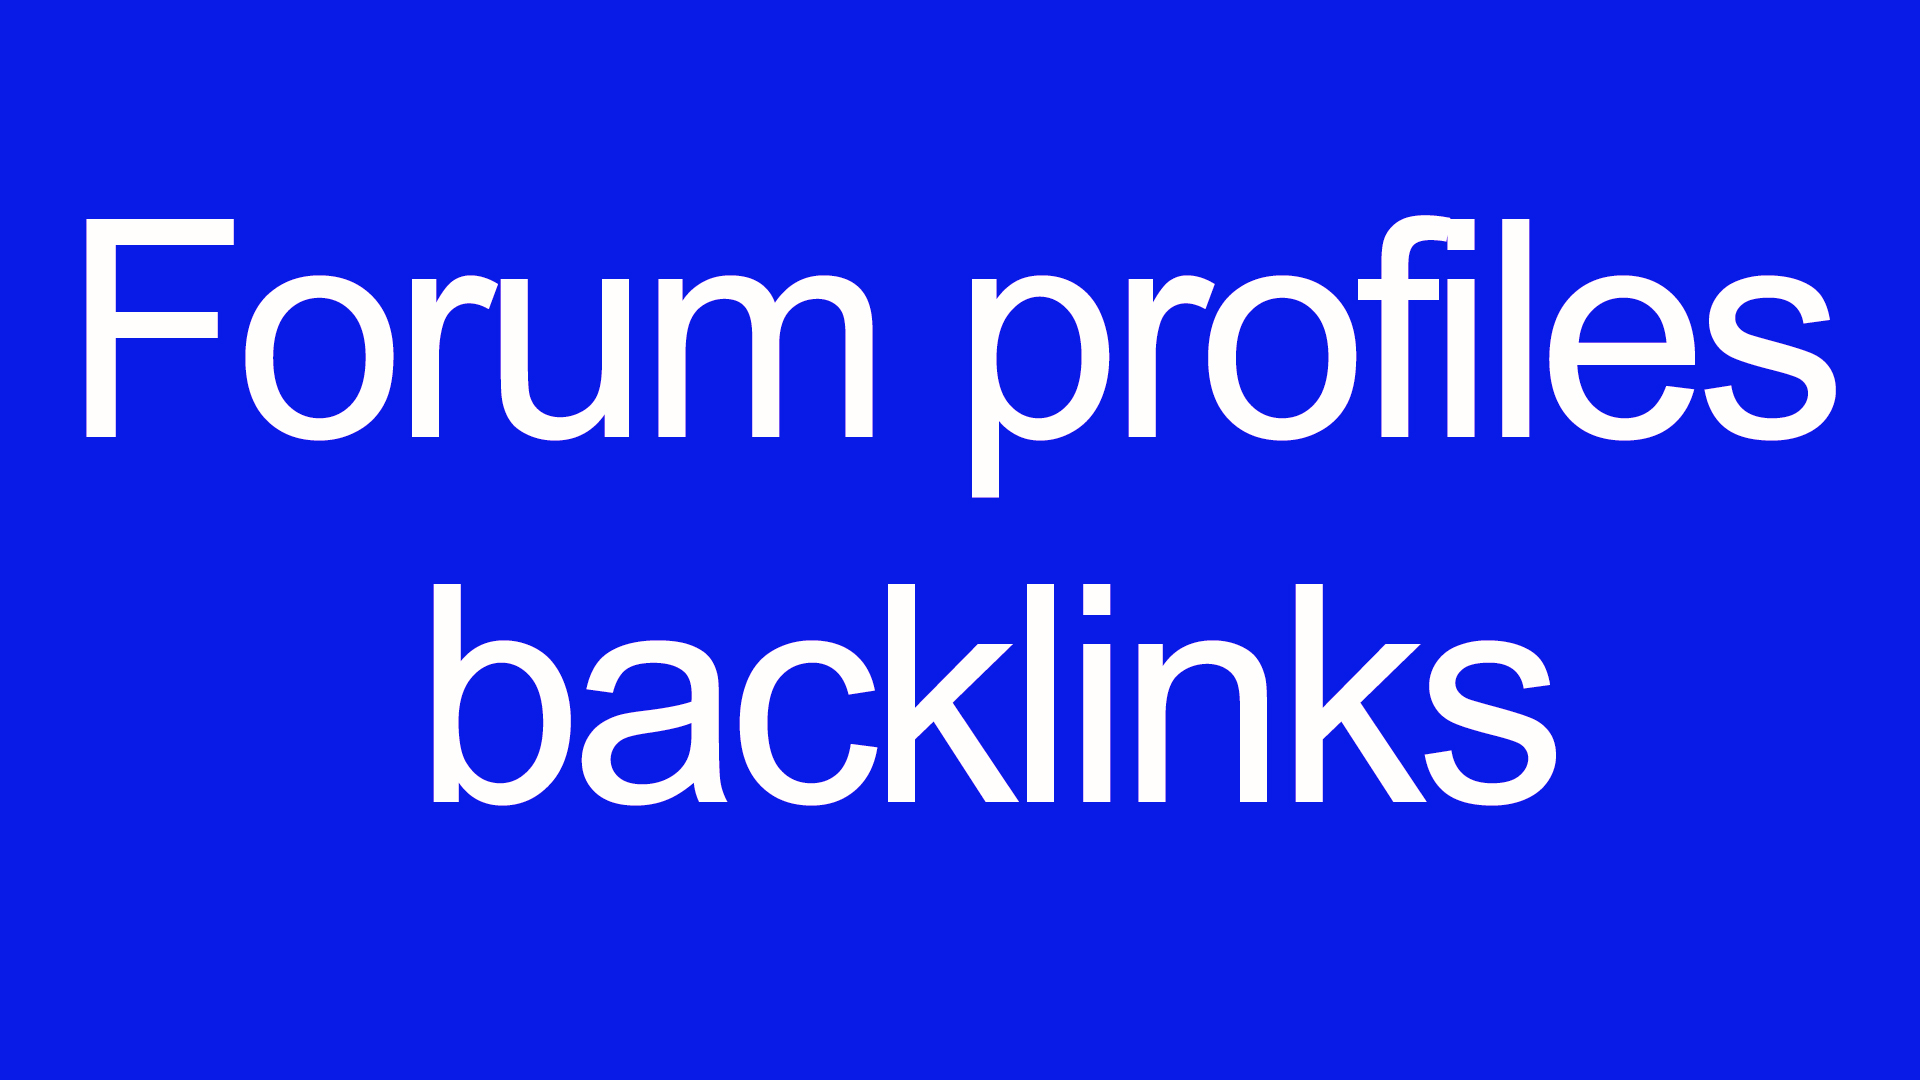 Forum profiles backlinks 5000 backlinks for your site